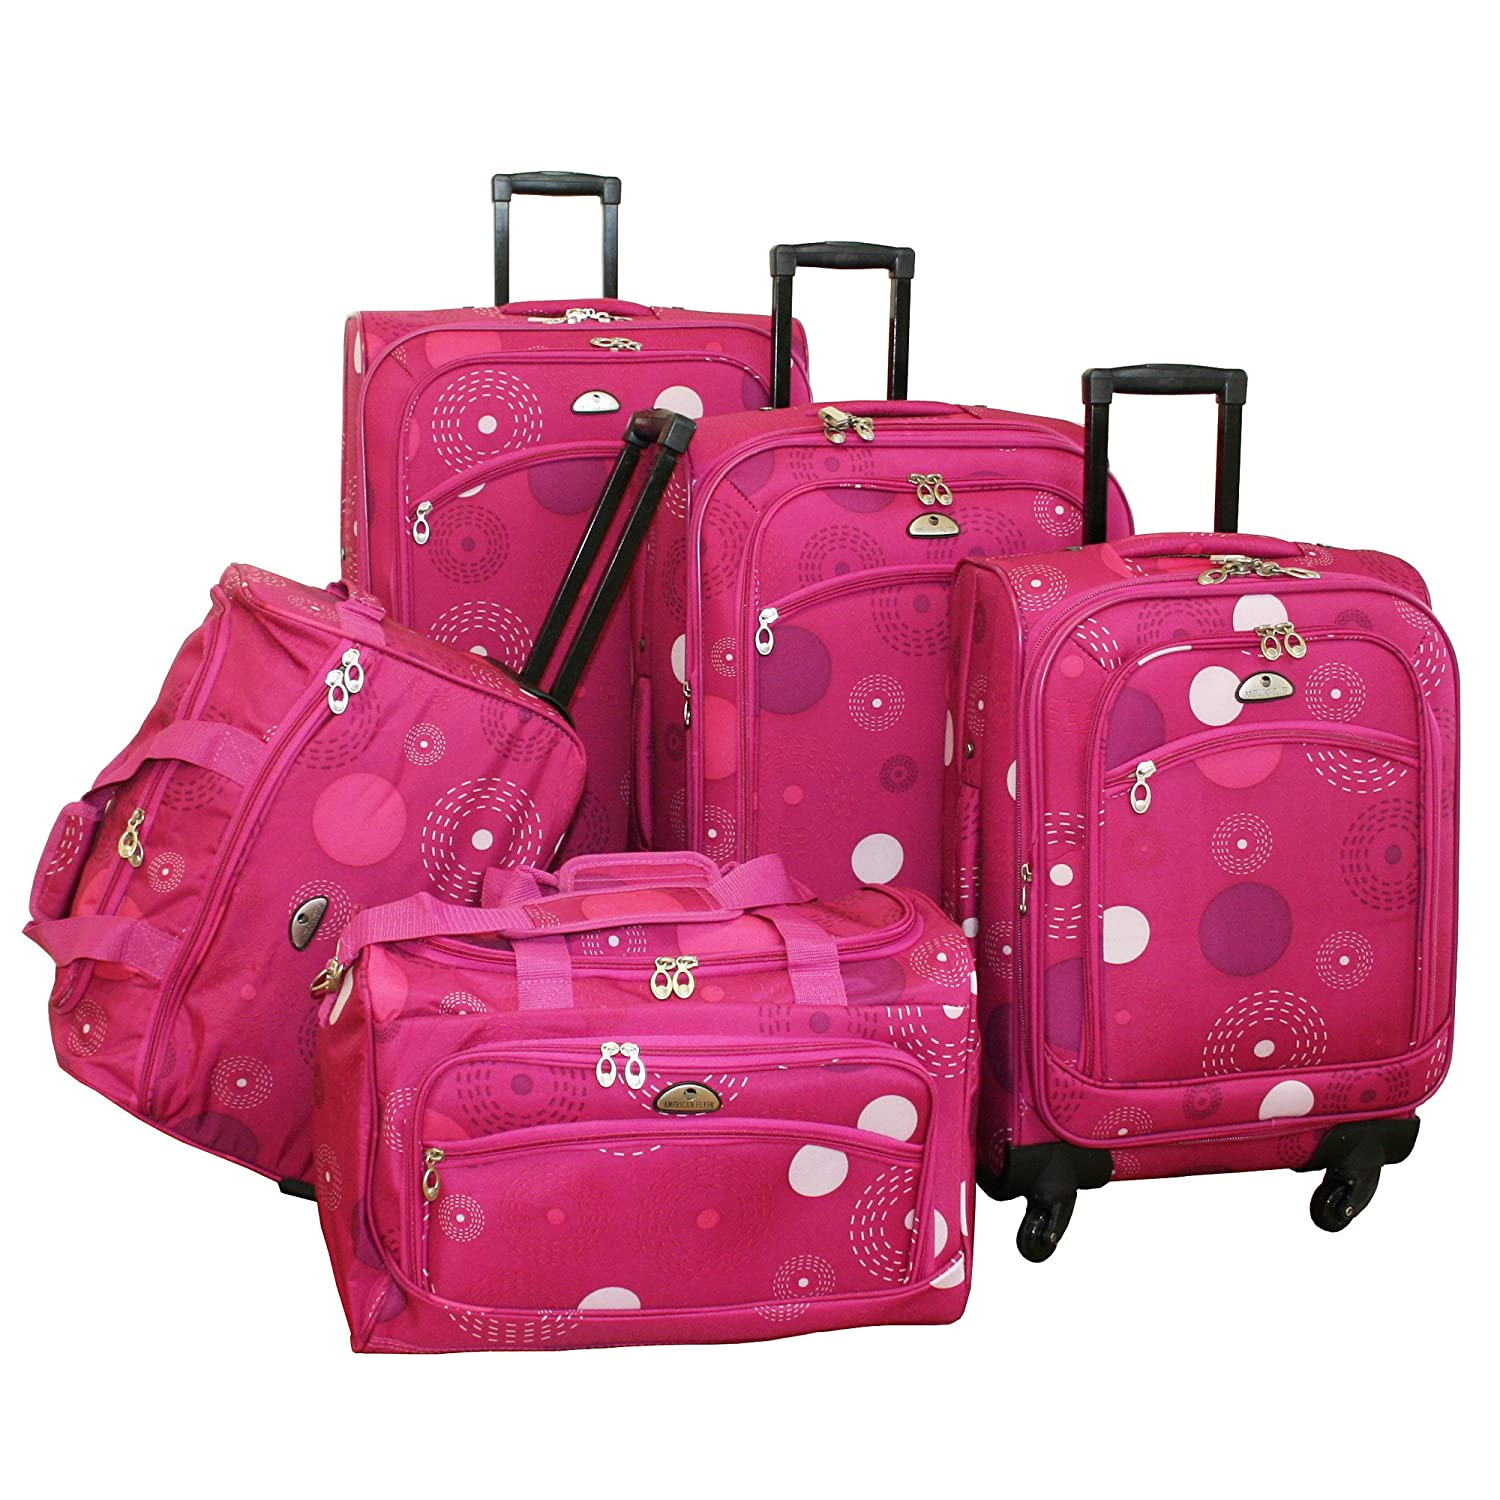 Pink Suitcase Australia Mc Luggage